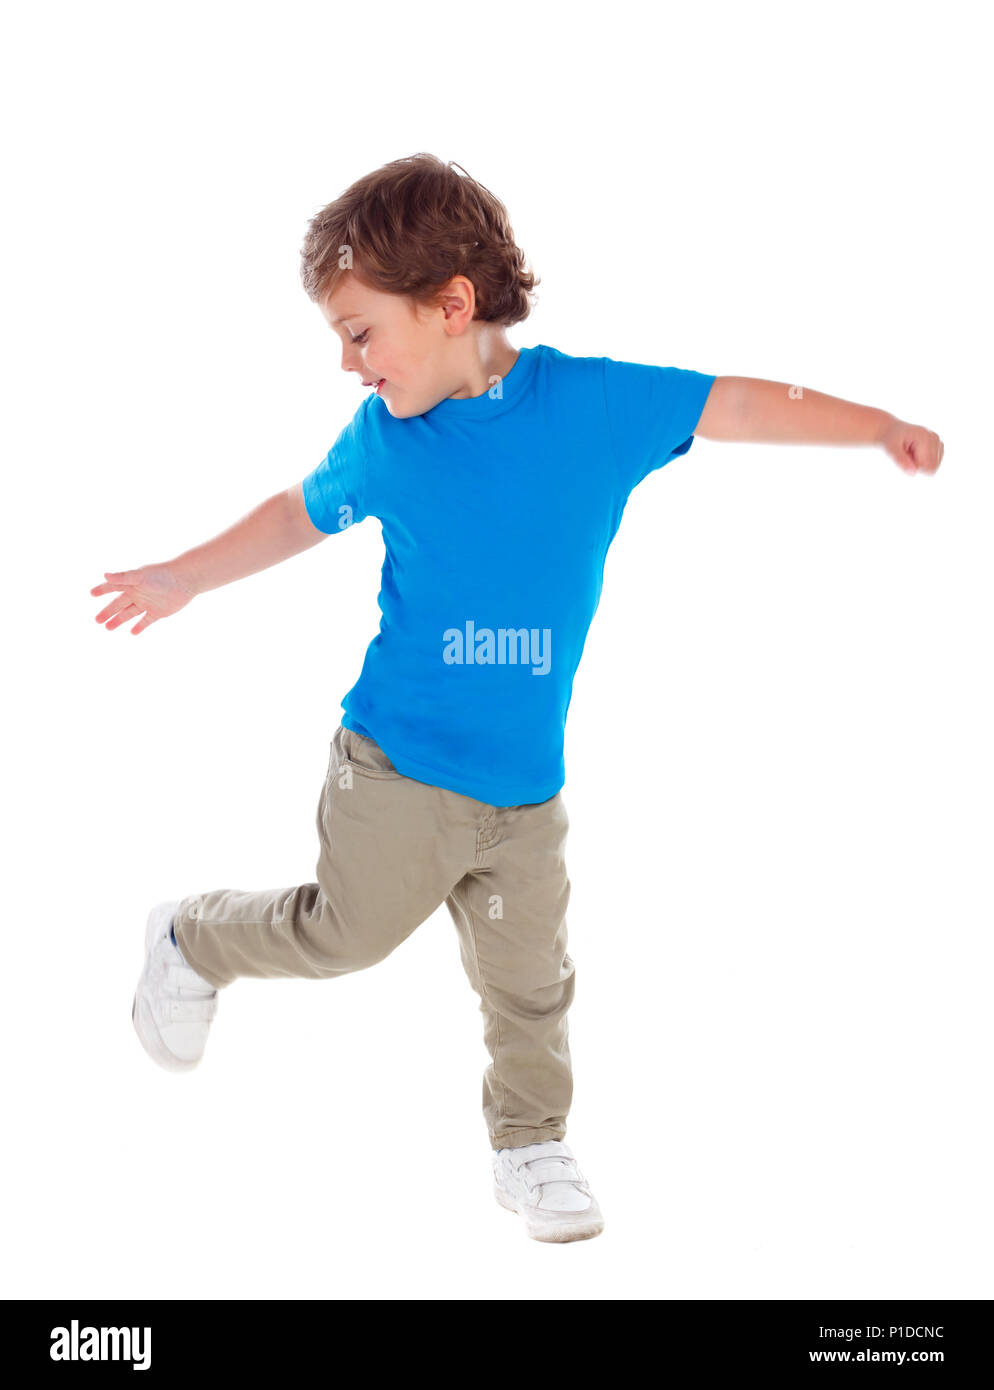 b940c4f2c592 Beautiful little child three years old wearing blue t-shirt solated on  white background